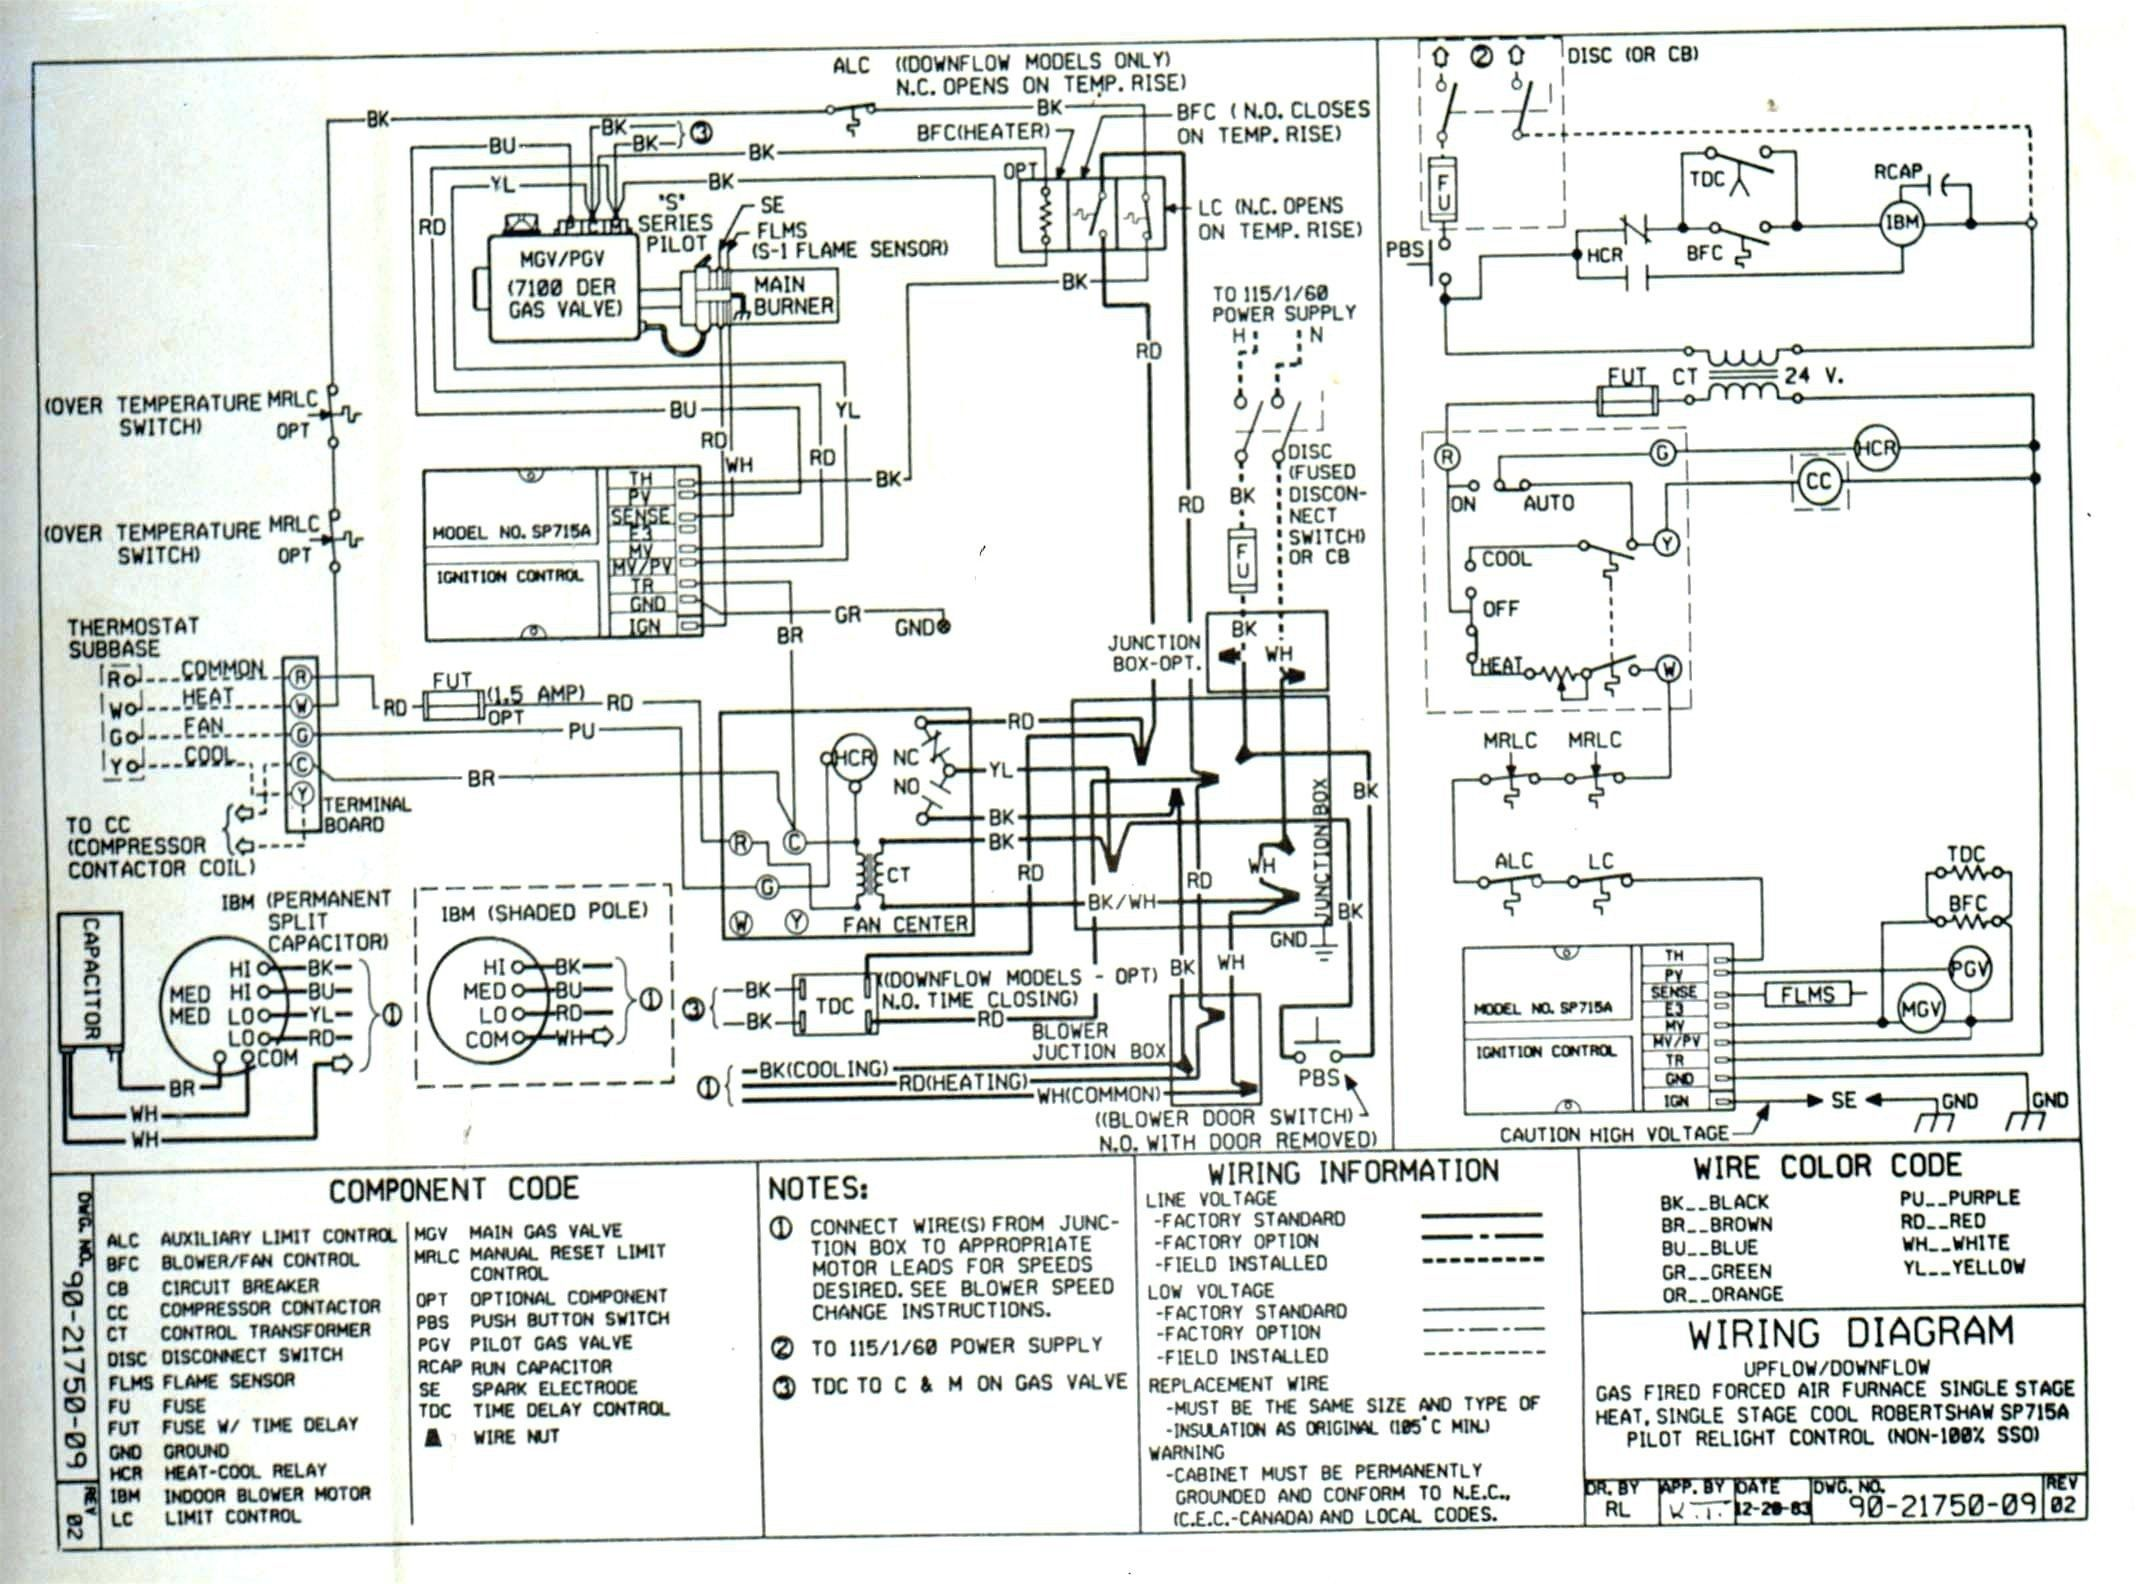 small resolution of trane bwv724a100d1 air handler wiring diagram simple wiring diagrams trane twe air handler wiring diagram trane bwv724a100d1 air handler wiring diagram